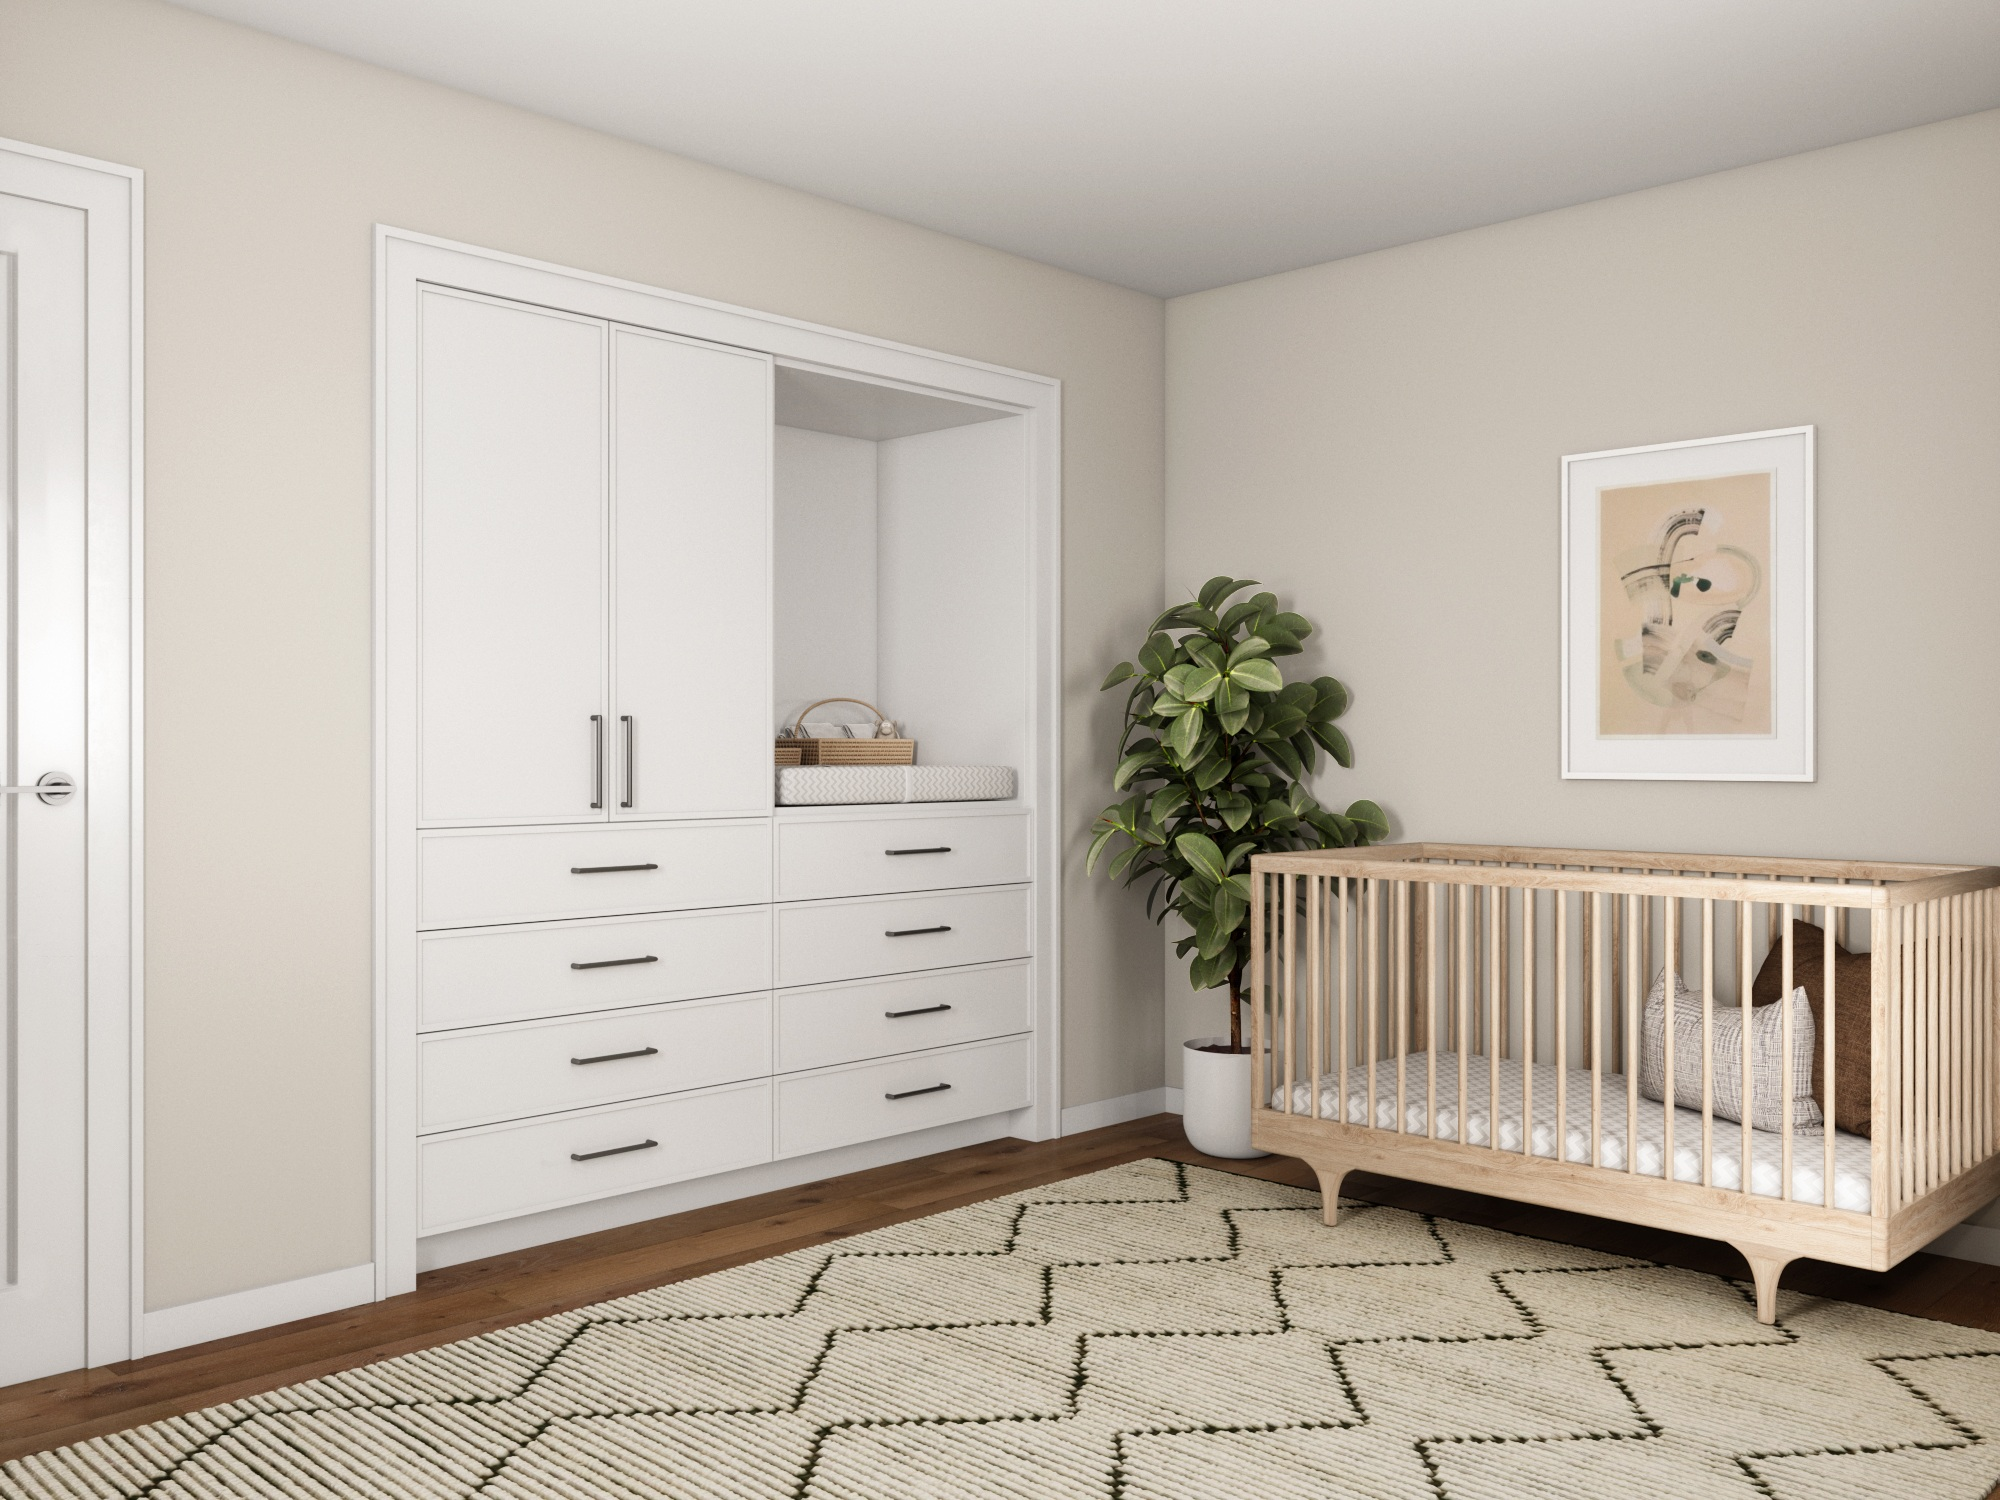 Closet Remodeland Retrofit - Transform an existing closet space into a custom closet system with drawers. Ideal for small spaces, this closet organization system makes it easy to declutter your home and your life.